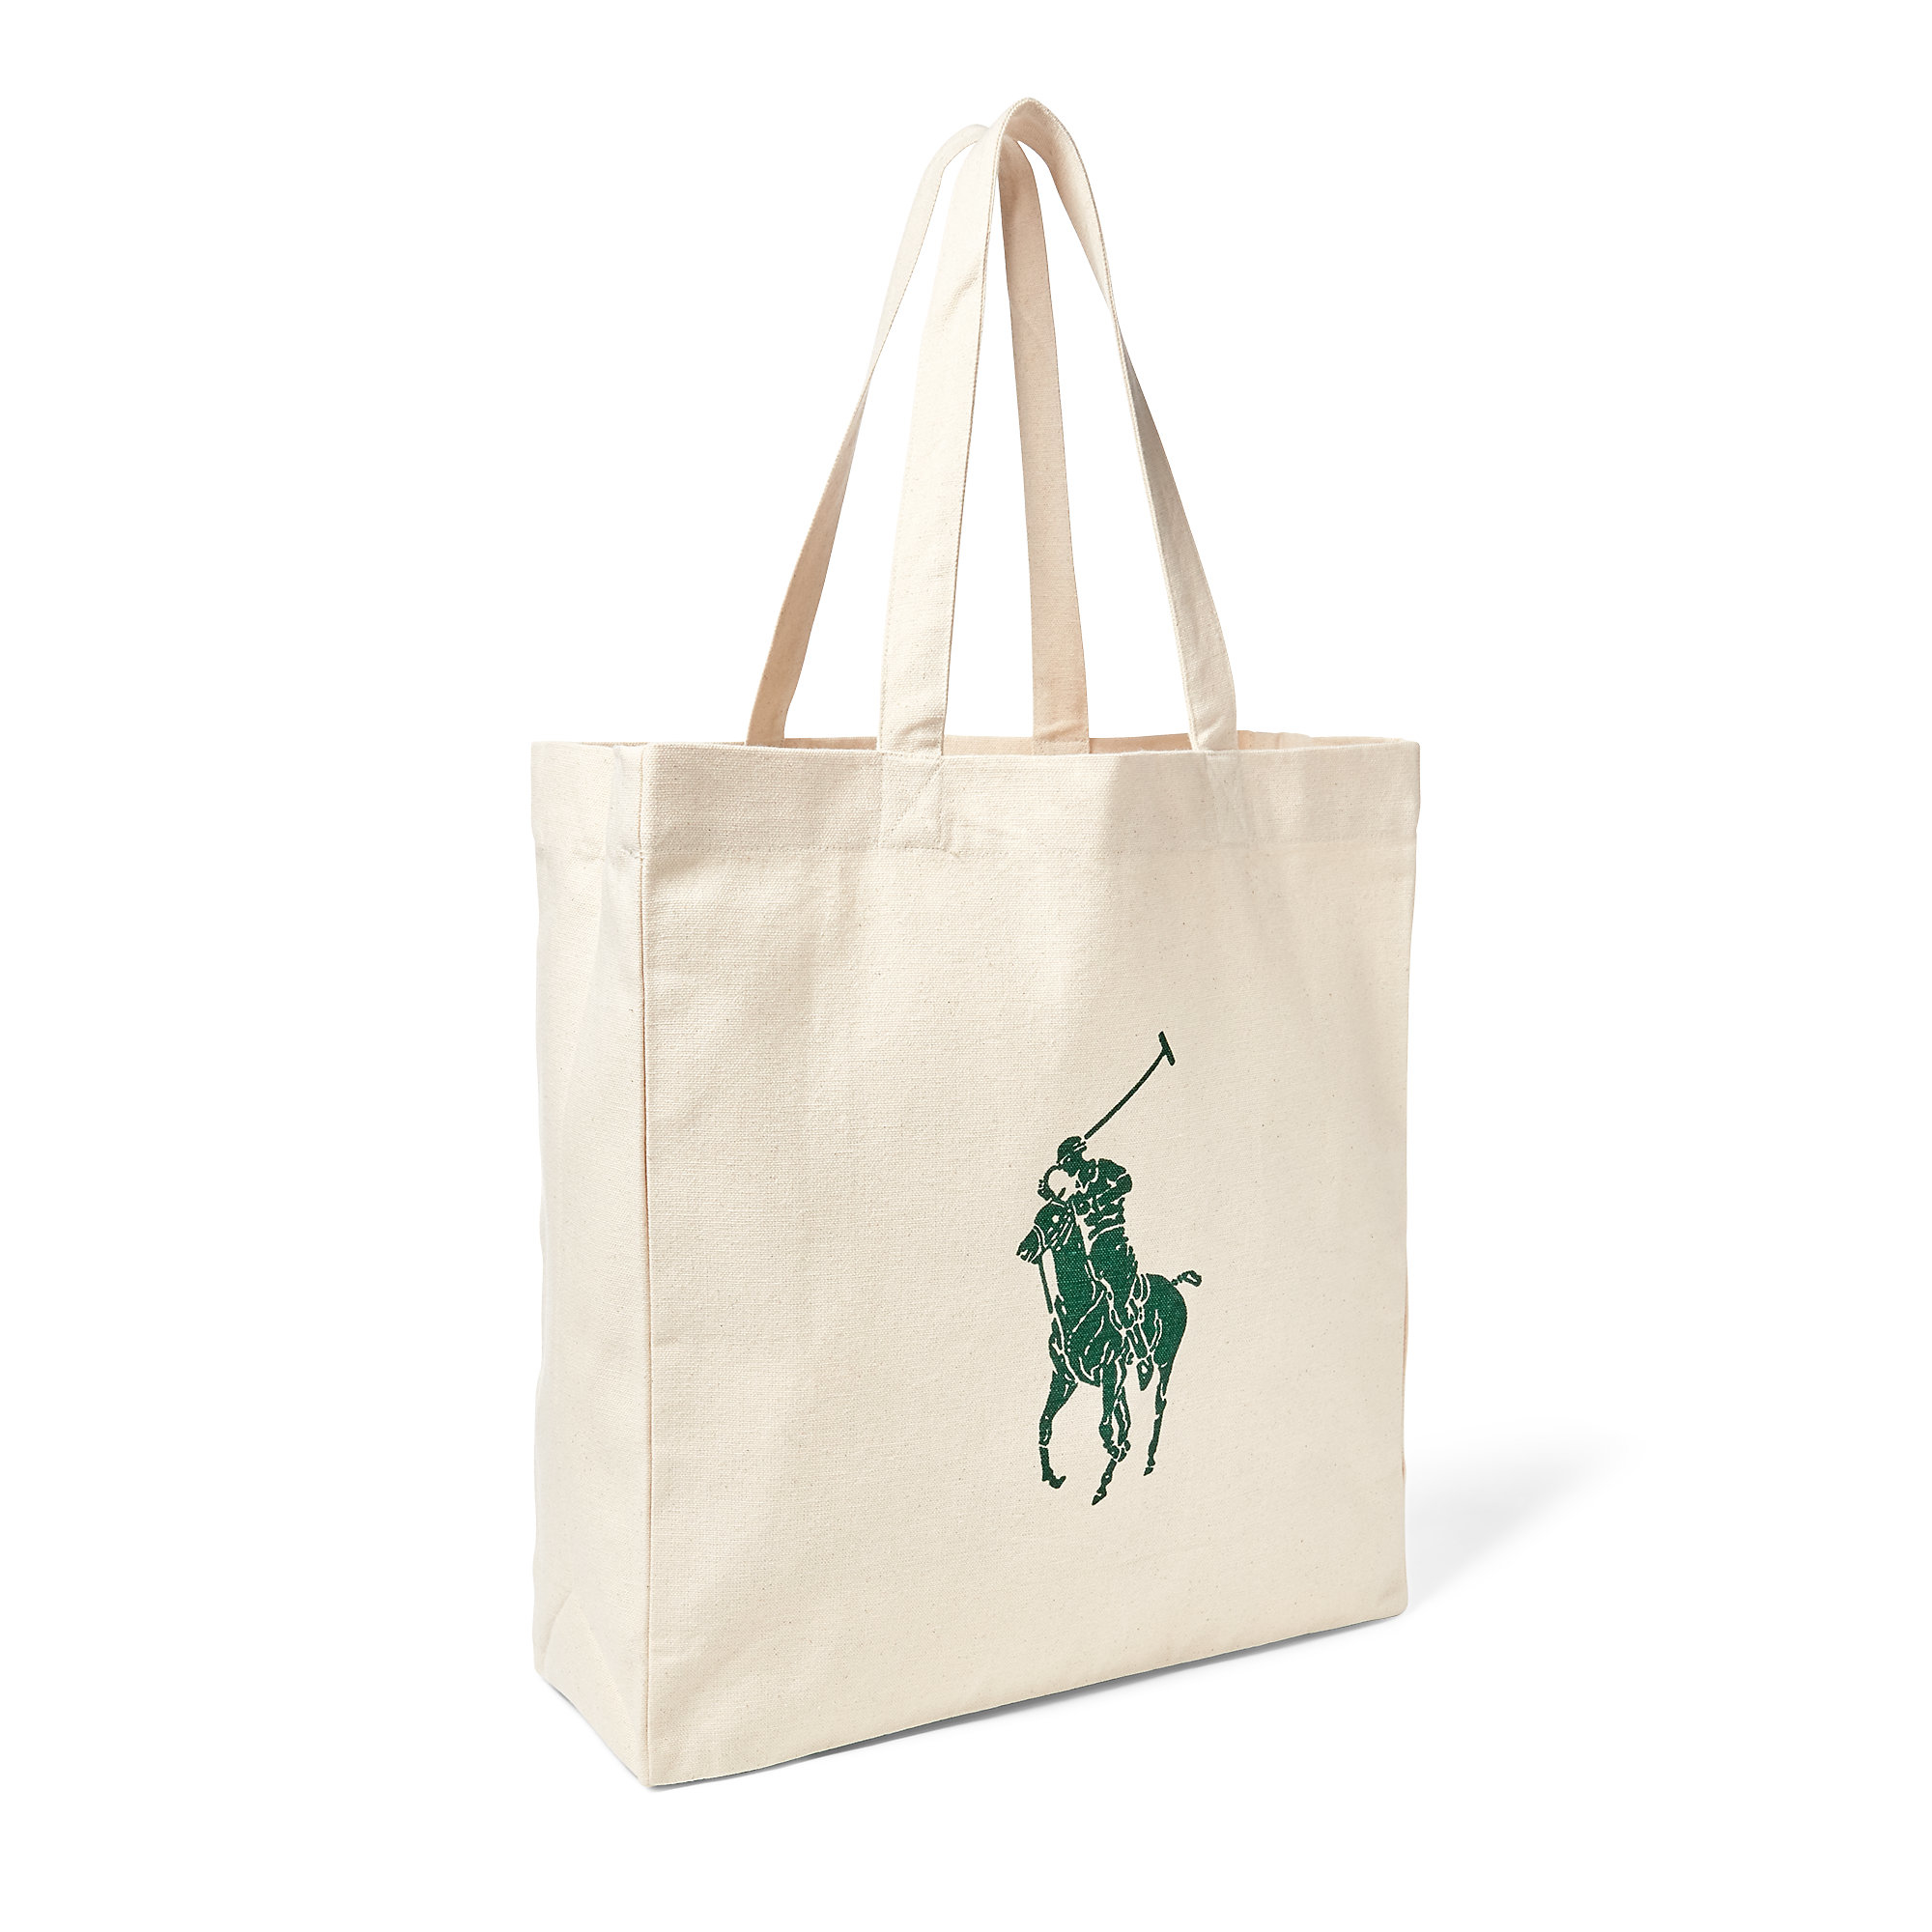 02a05e8798 ... where to buy lyst polo ralph lauren waterkeeper canvas tote in natural  06411 85d8c